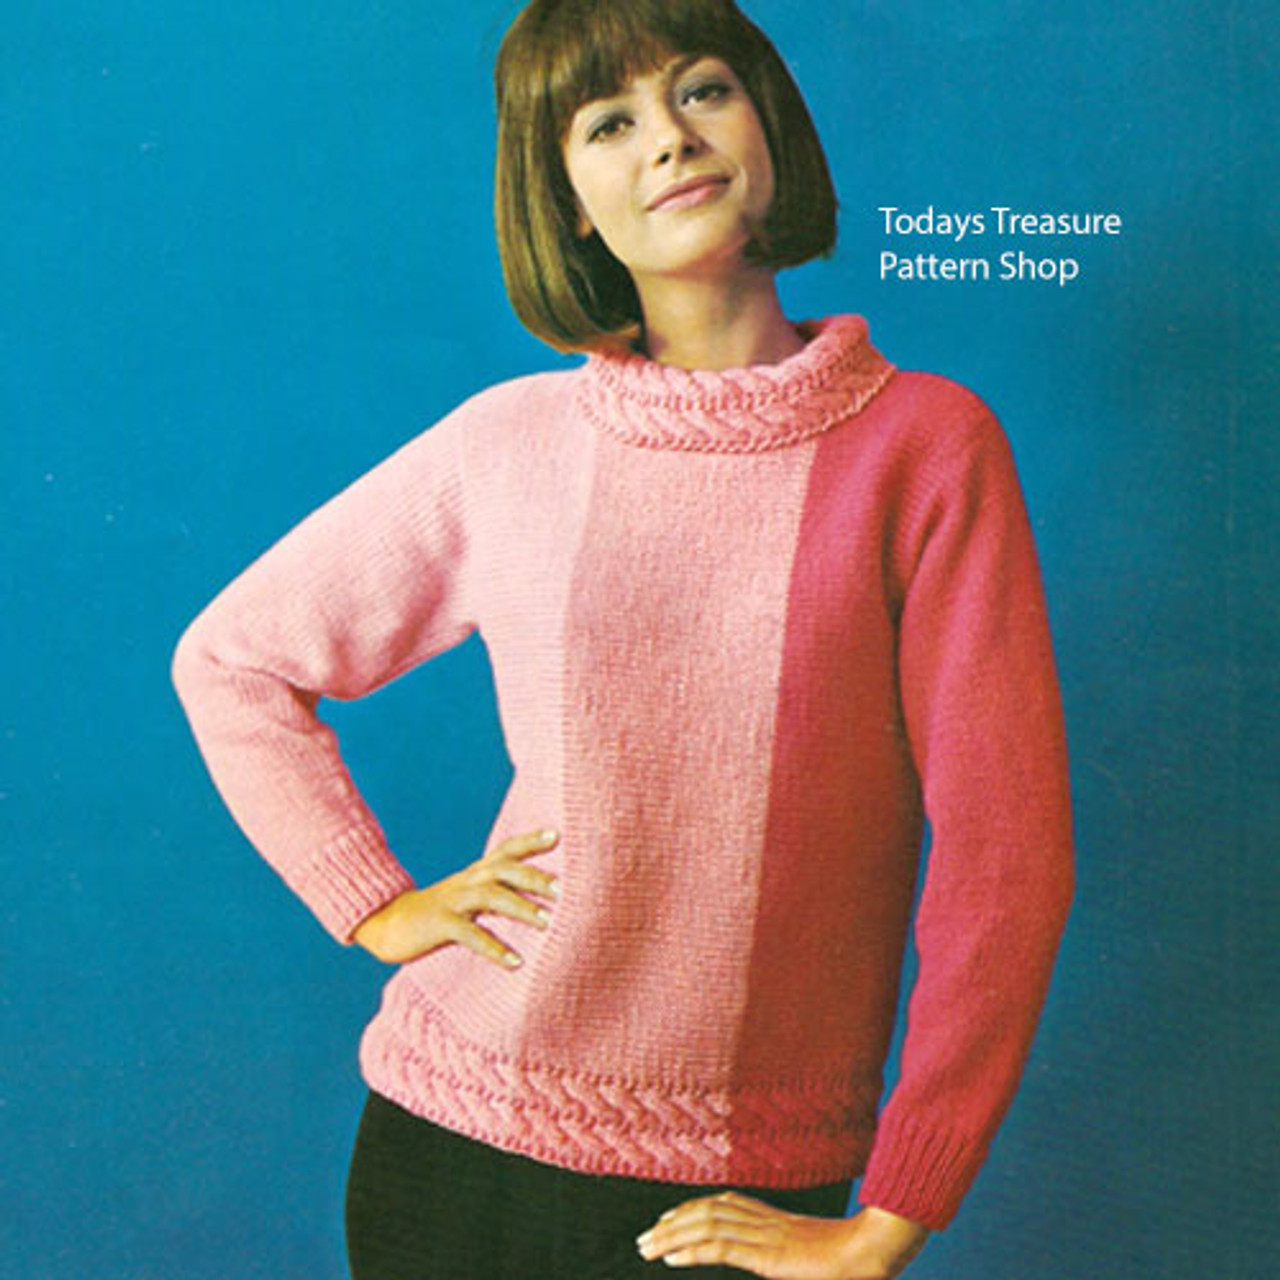 Knitting Pattern Tri-Color Sweater Pattern